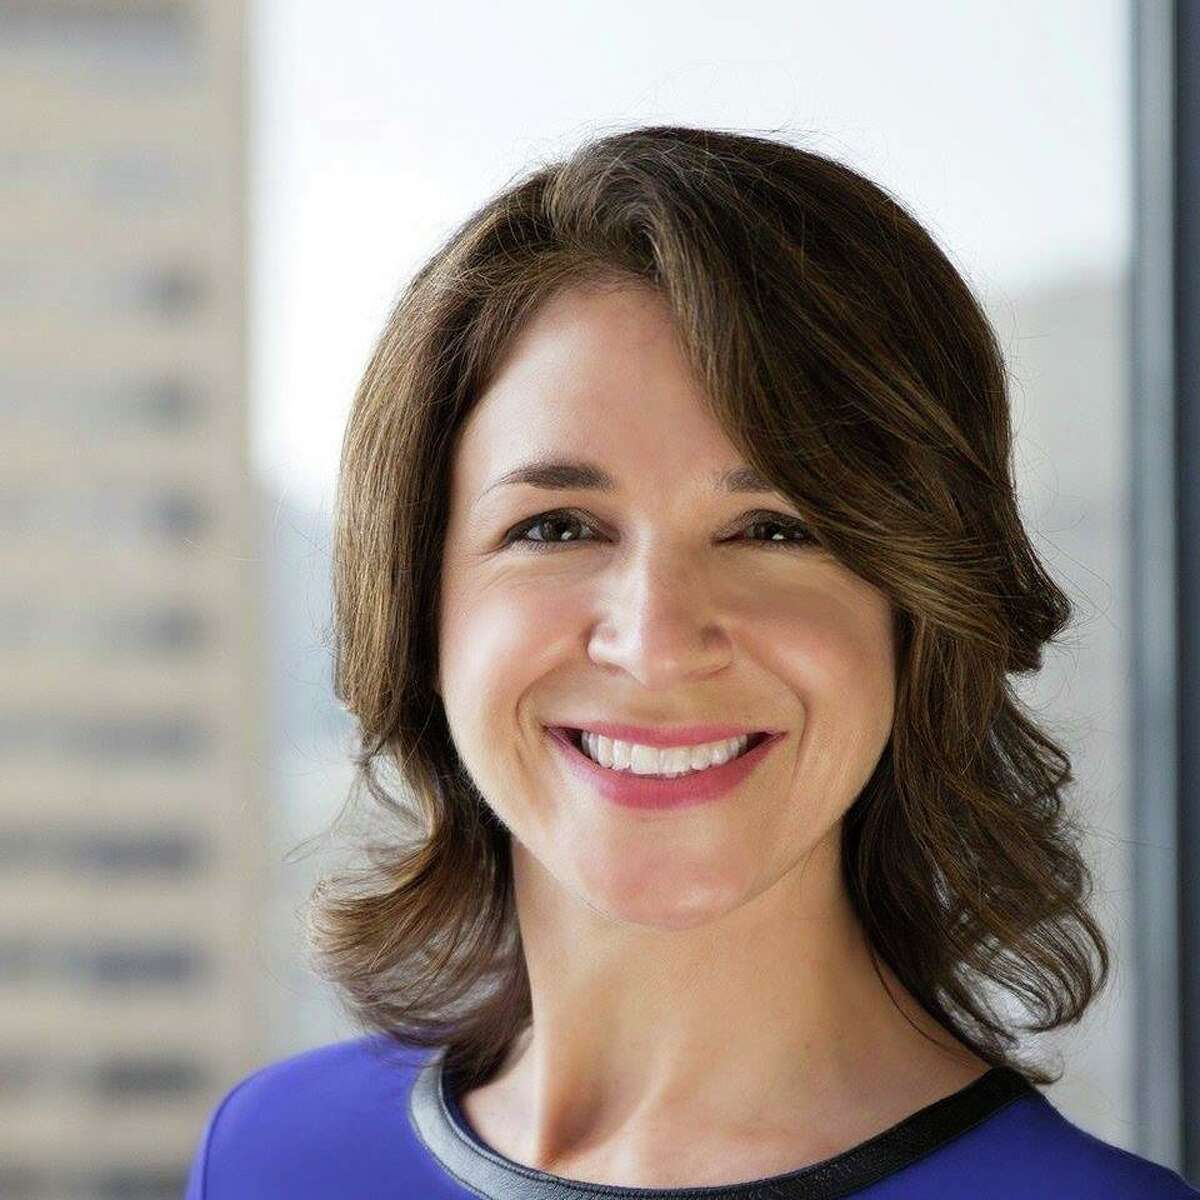 Environmental attorney Hilary Franz is moving ahead in her bid to become Washington's next Public Lands Commissioner.